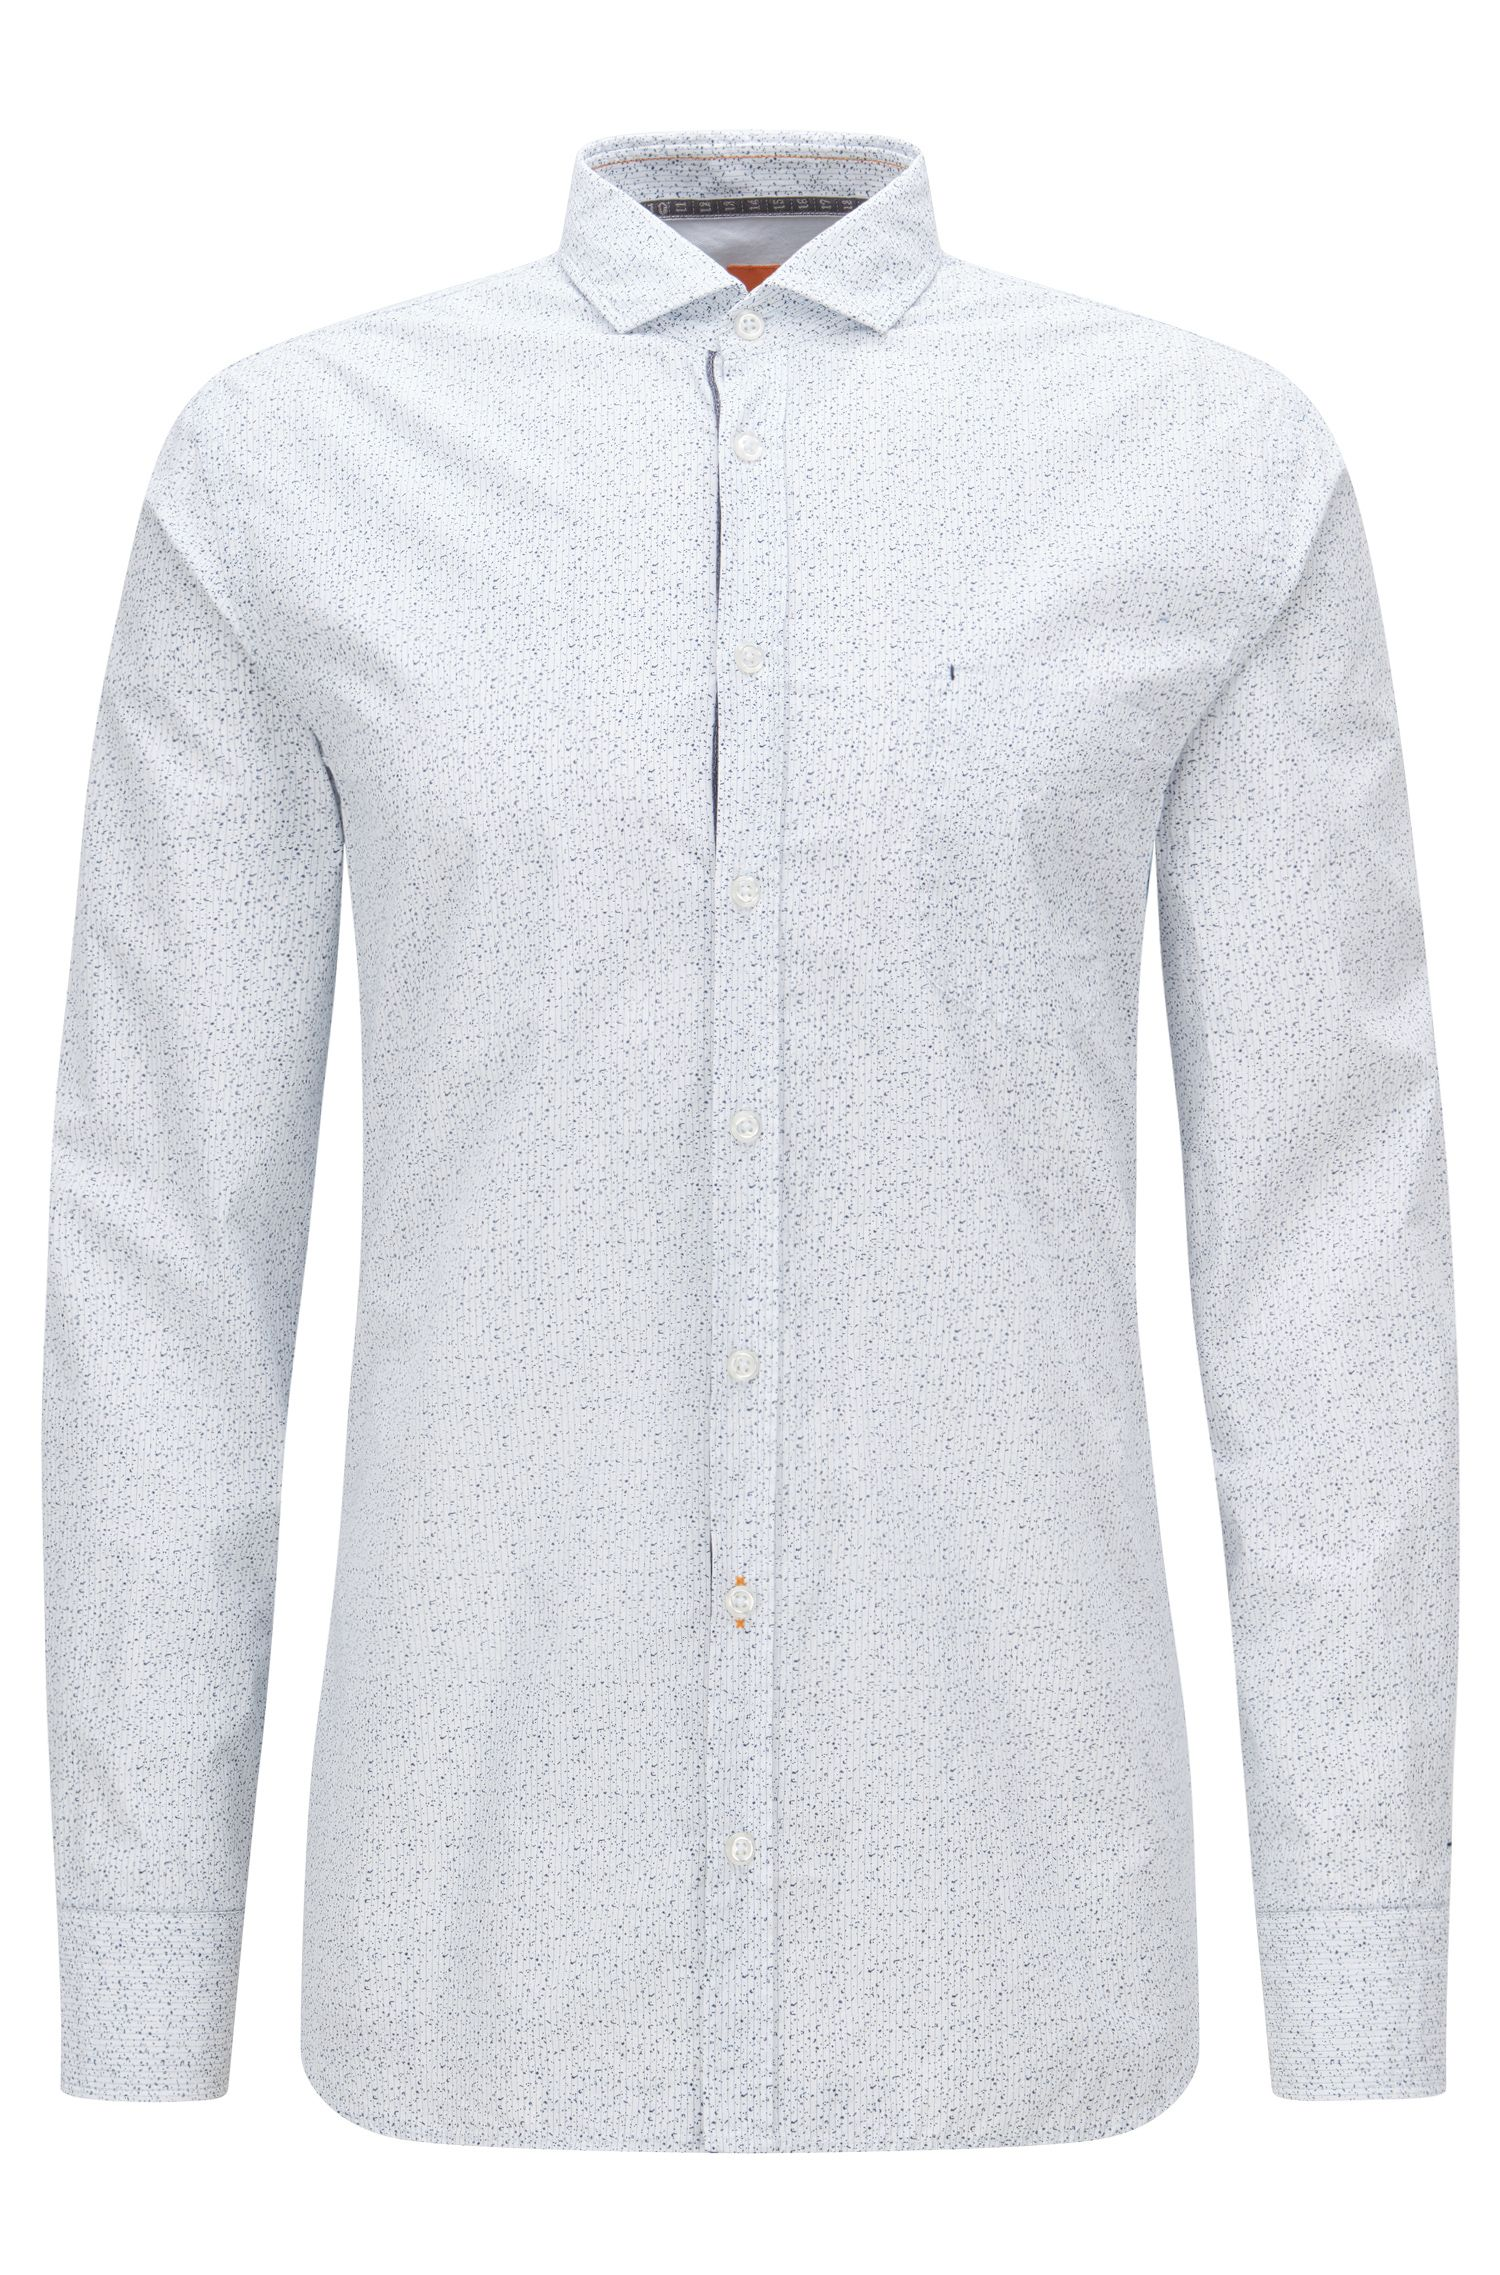 Speckled Cotton Button Down Shirt, Slim Fit | Cattitude